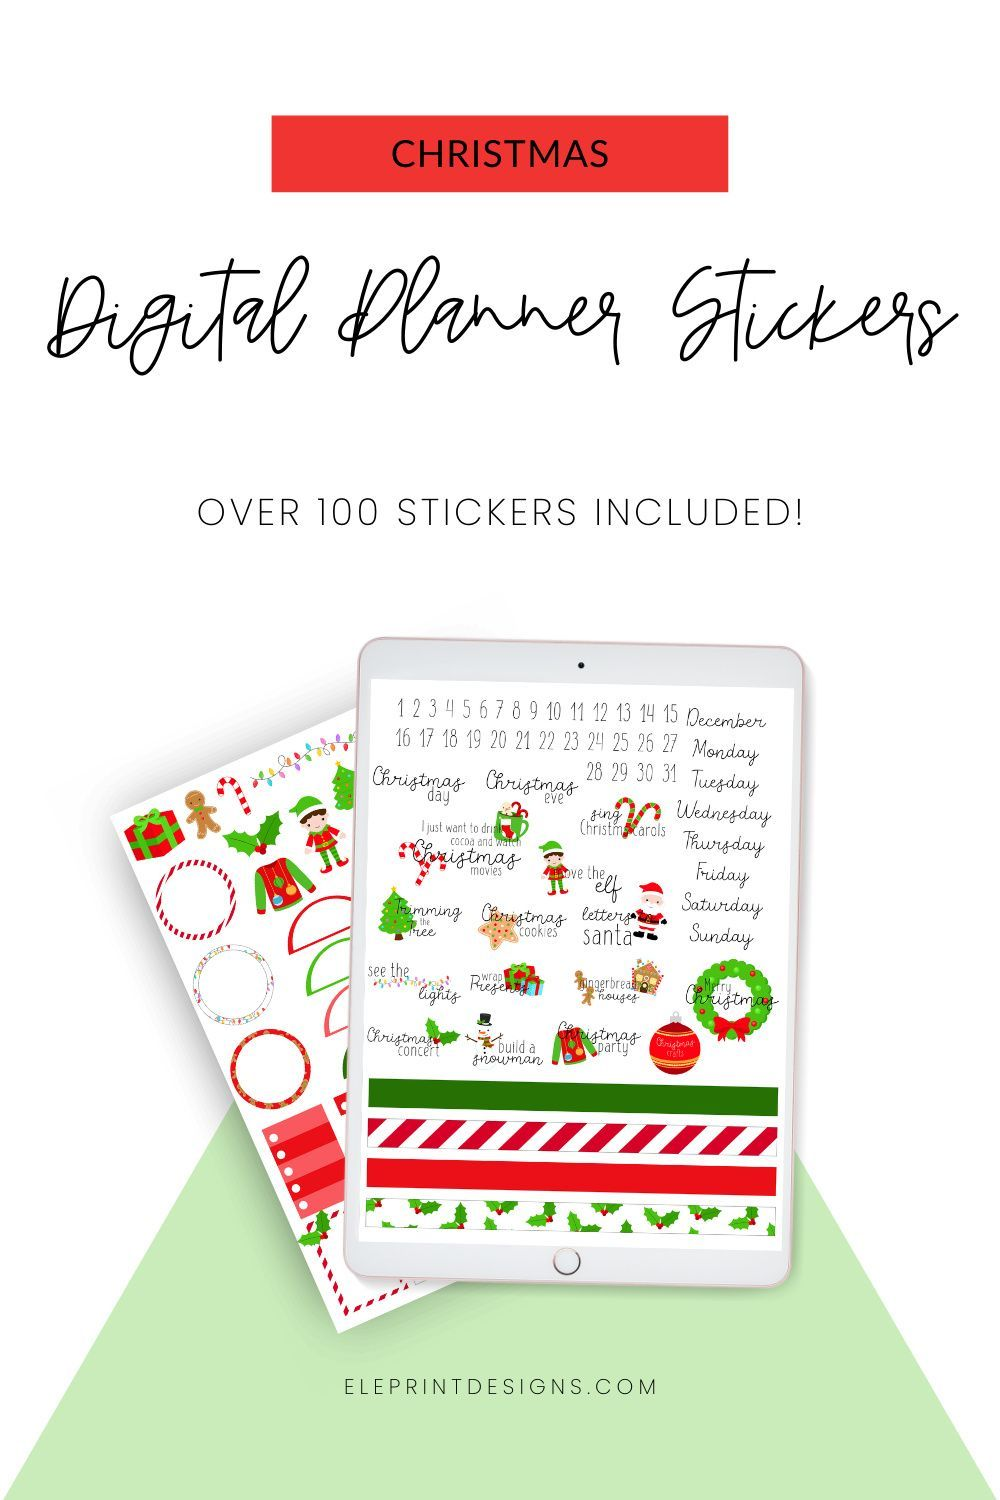 Christmas Digital Planner Stickers Goodnotes Stickers Xodo Etsy Planner Stickers Digital Planner Holiday Planner